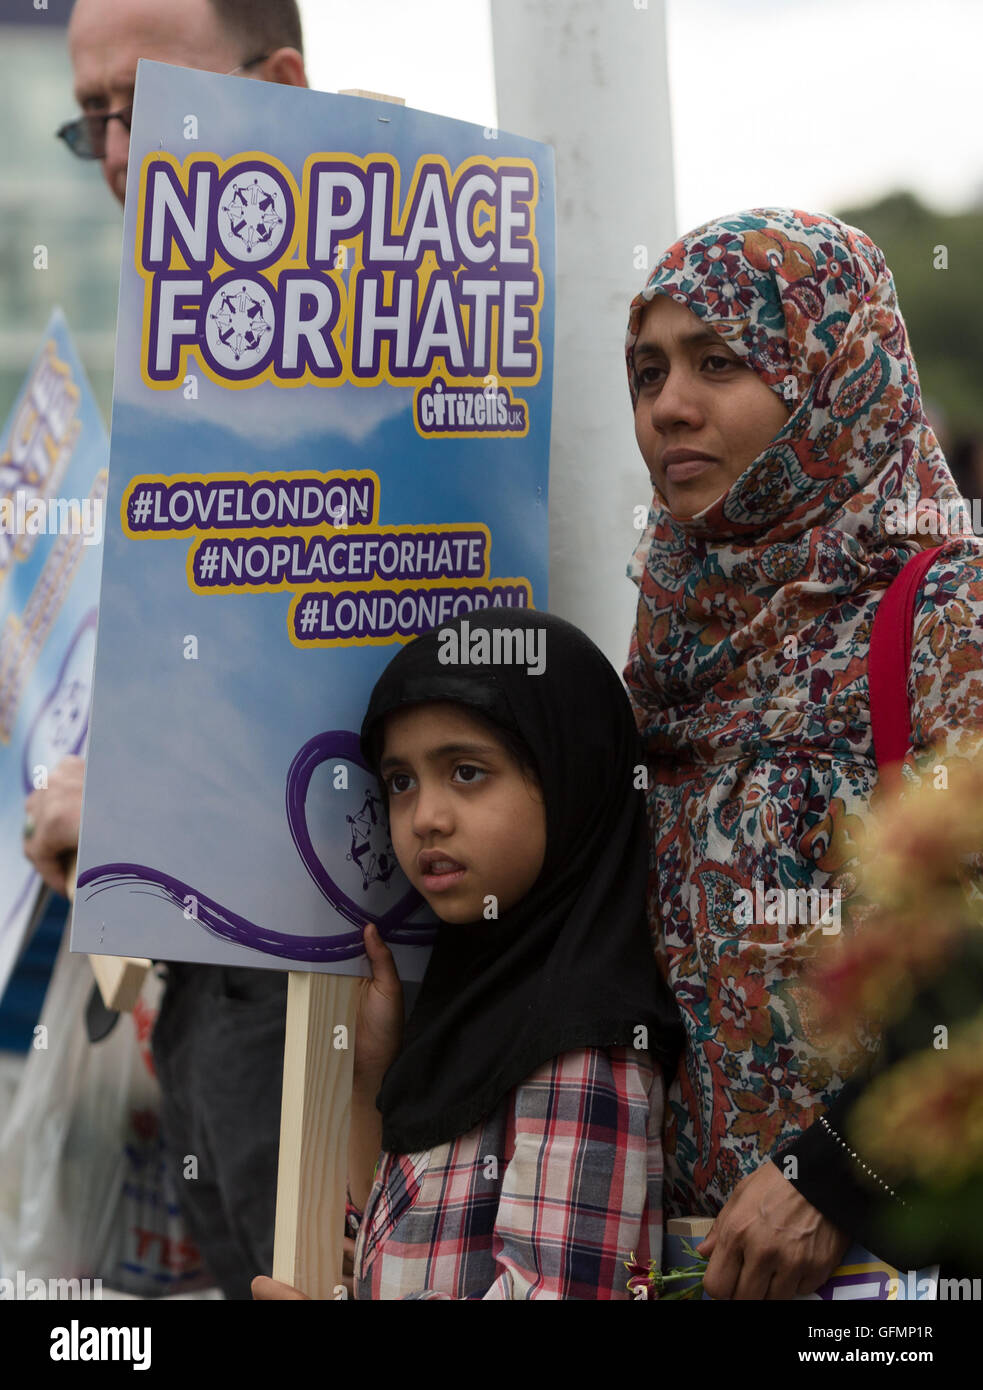 London, UK. 31st July 2016. Citizens UK stage a protest rally against racism and hate crime, marching from Tower - Stock Image